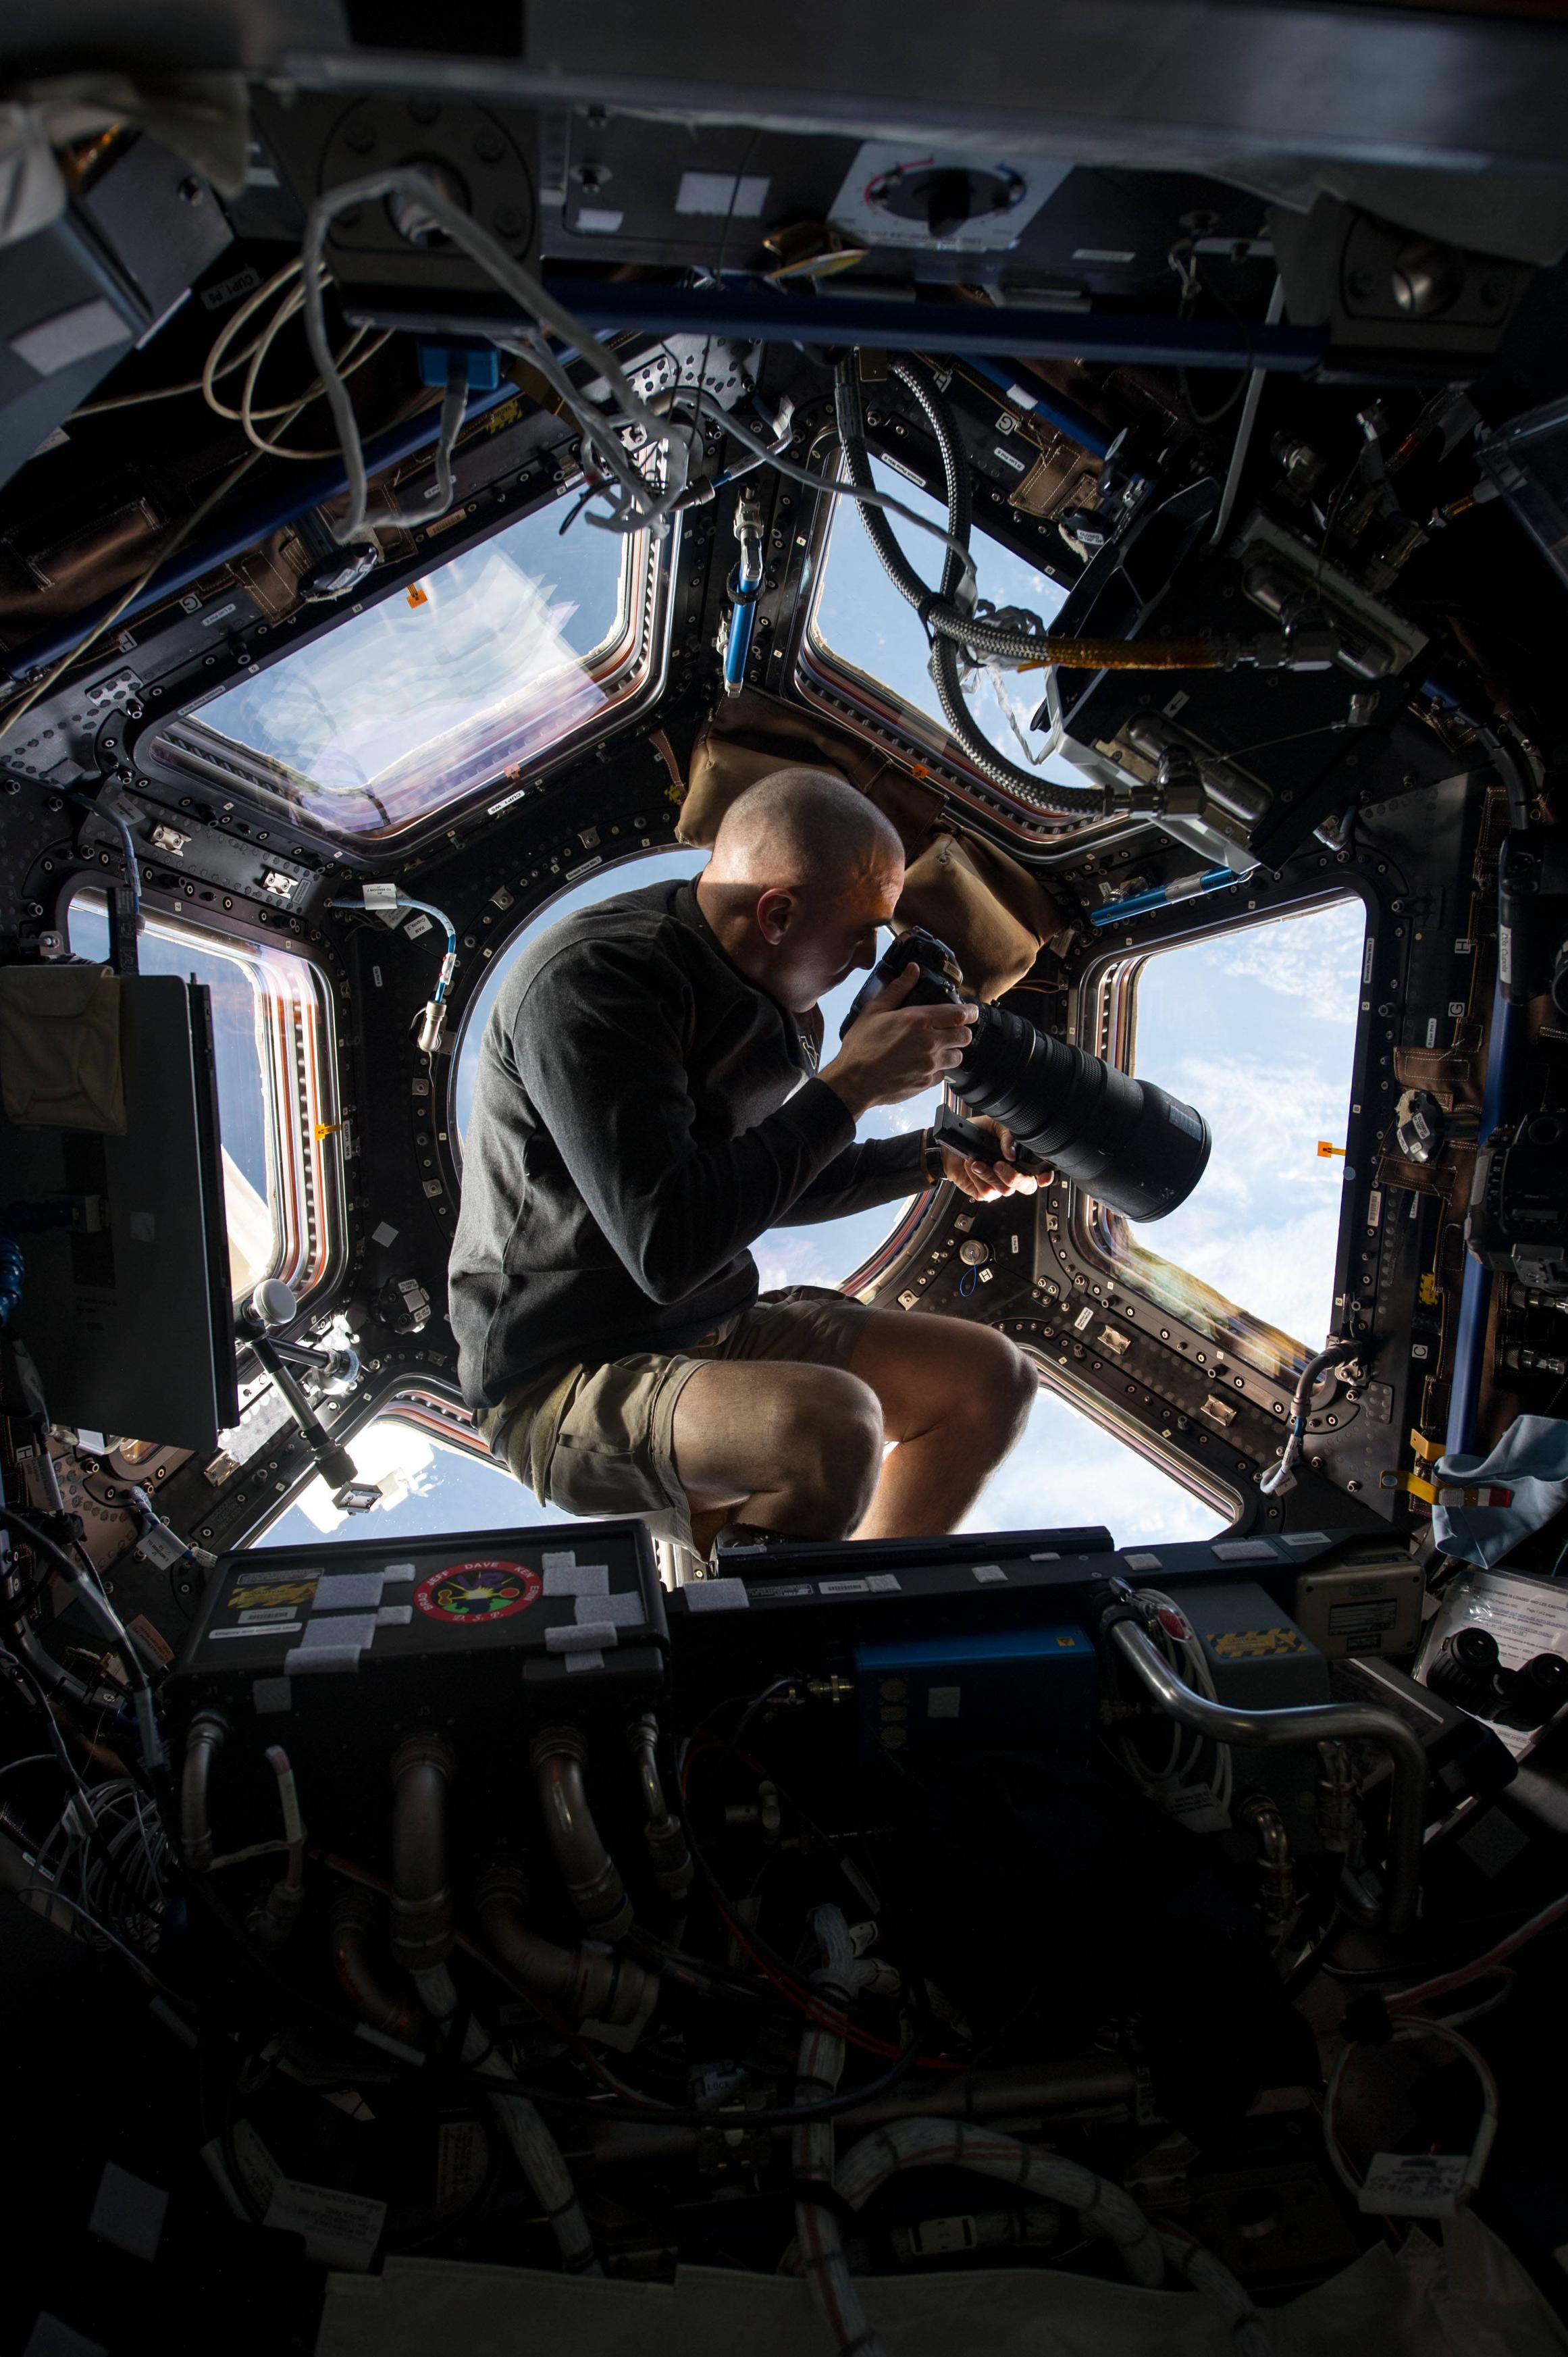 NASA astronaut Chris Cassidy taking a photo from the ISS's cupola viewport. Image by NASA.